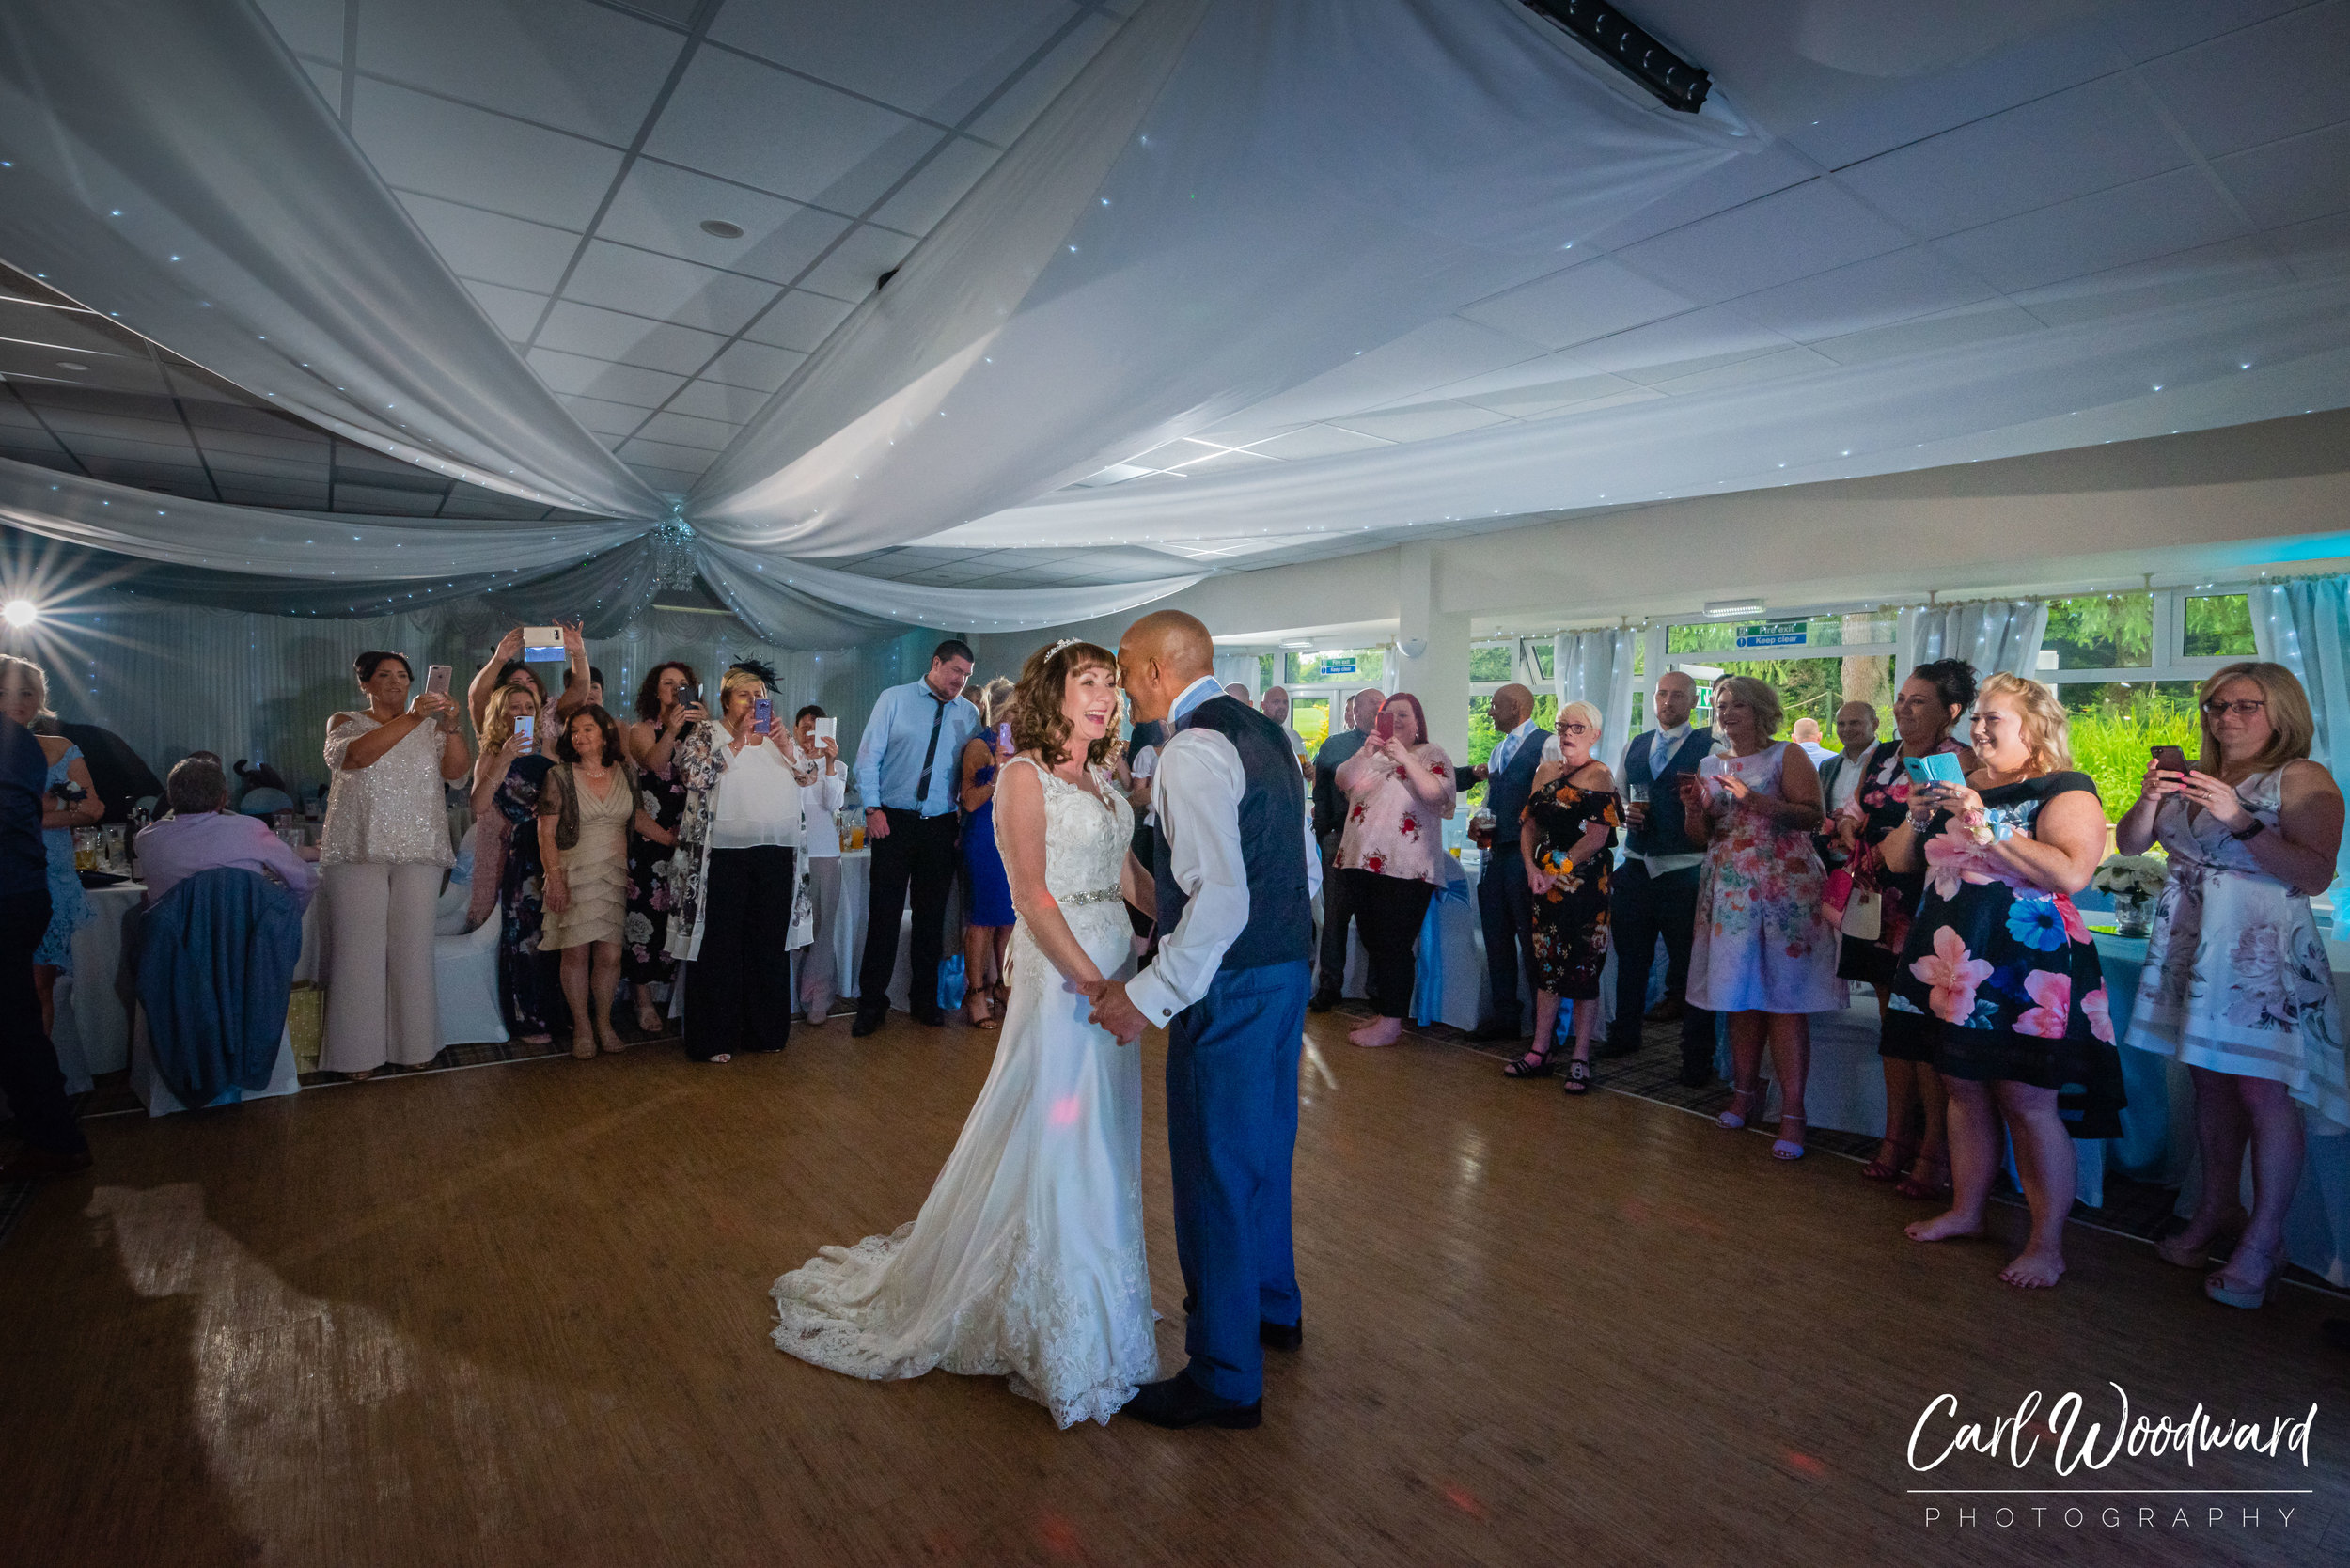 018-Mountain-Ash-Golf-Club-Wedding-Cardiff-Wedding-Photography.jpg